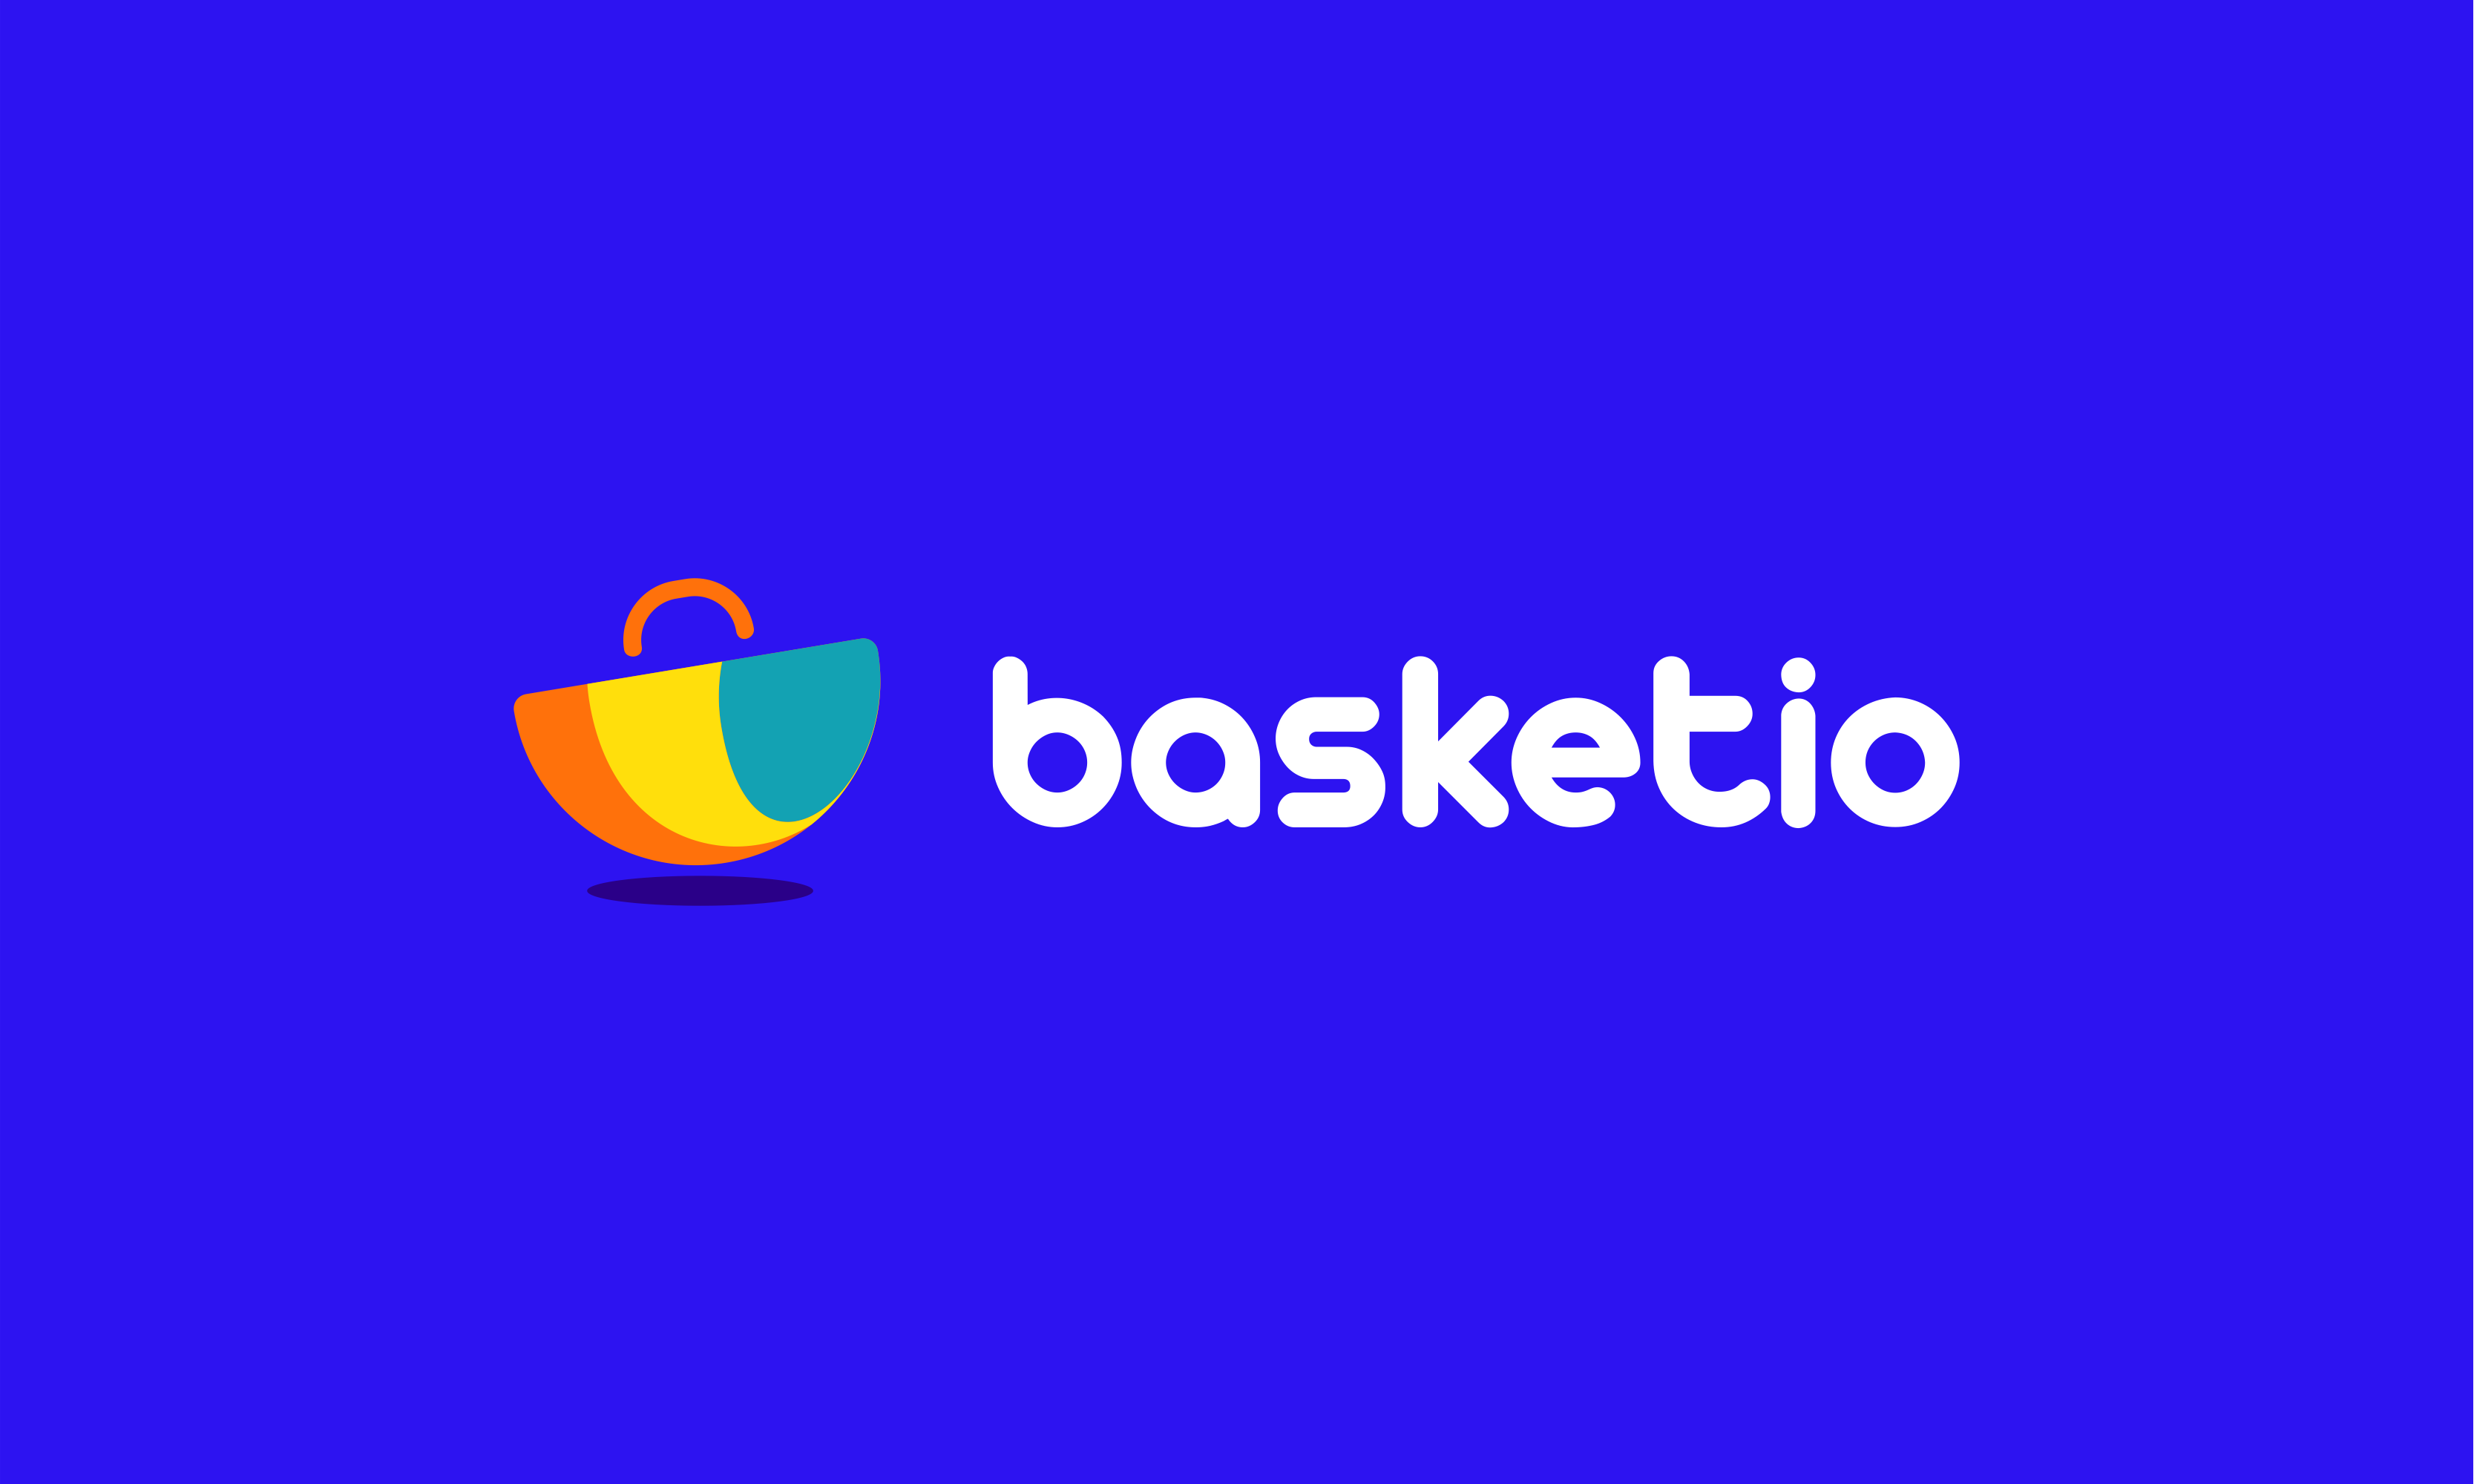 Basketio